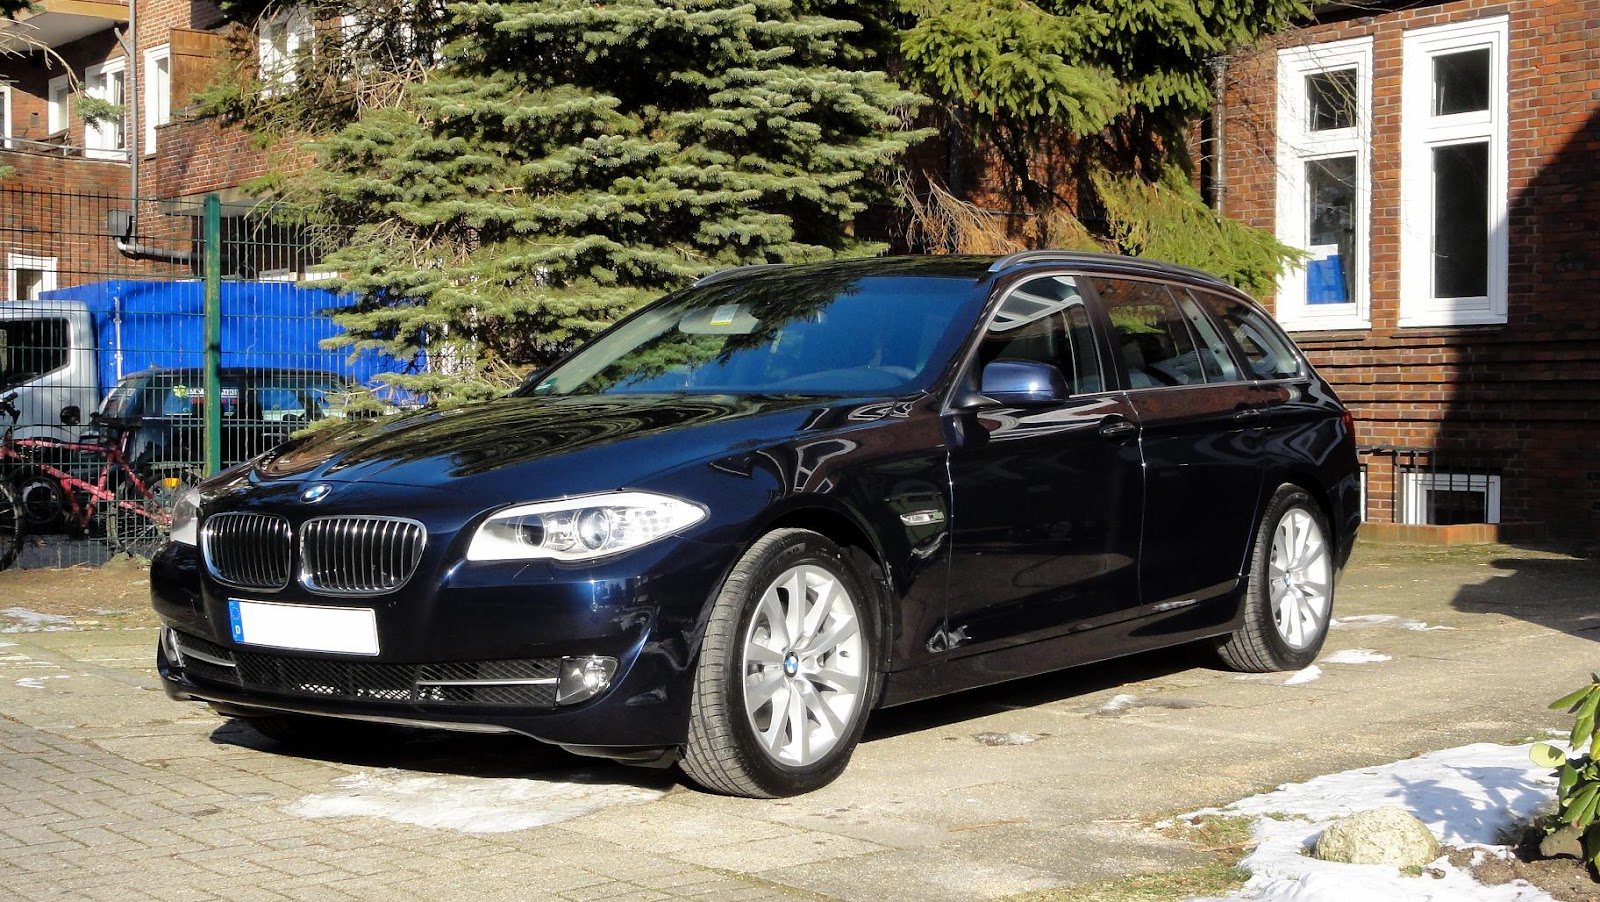 Guitigefilmpjes 2012 Bmw 520da Touring Pictures Video